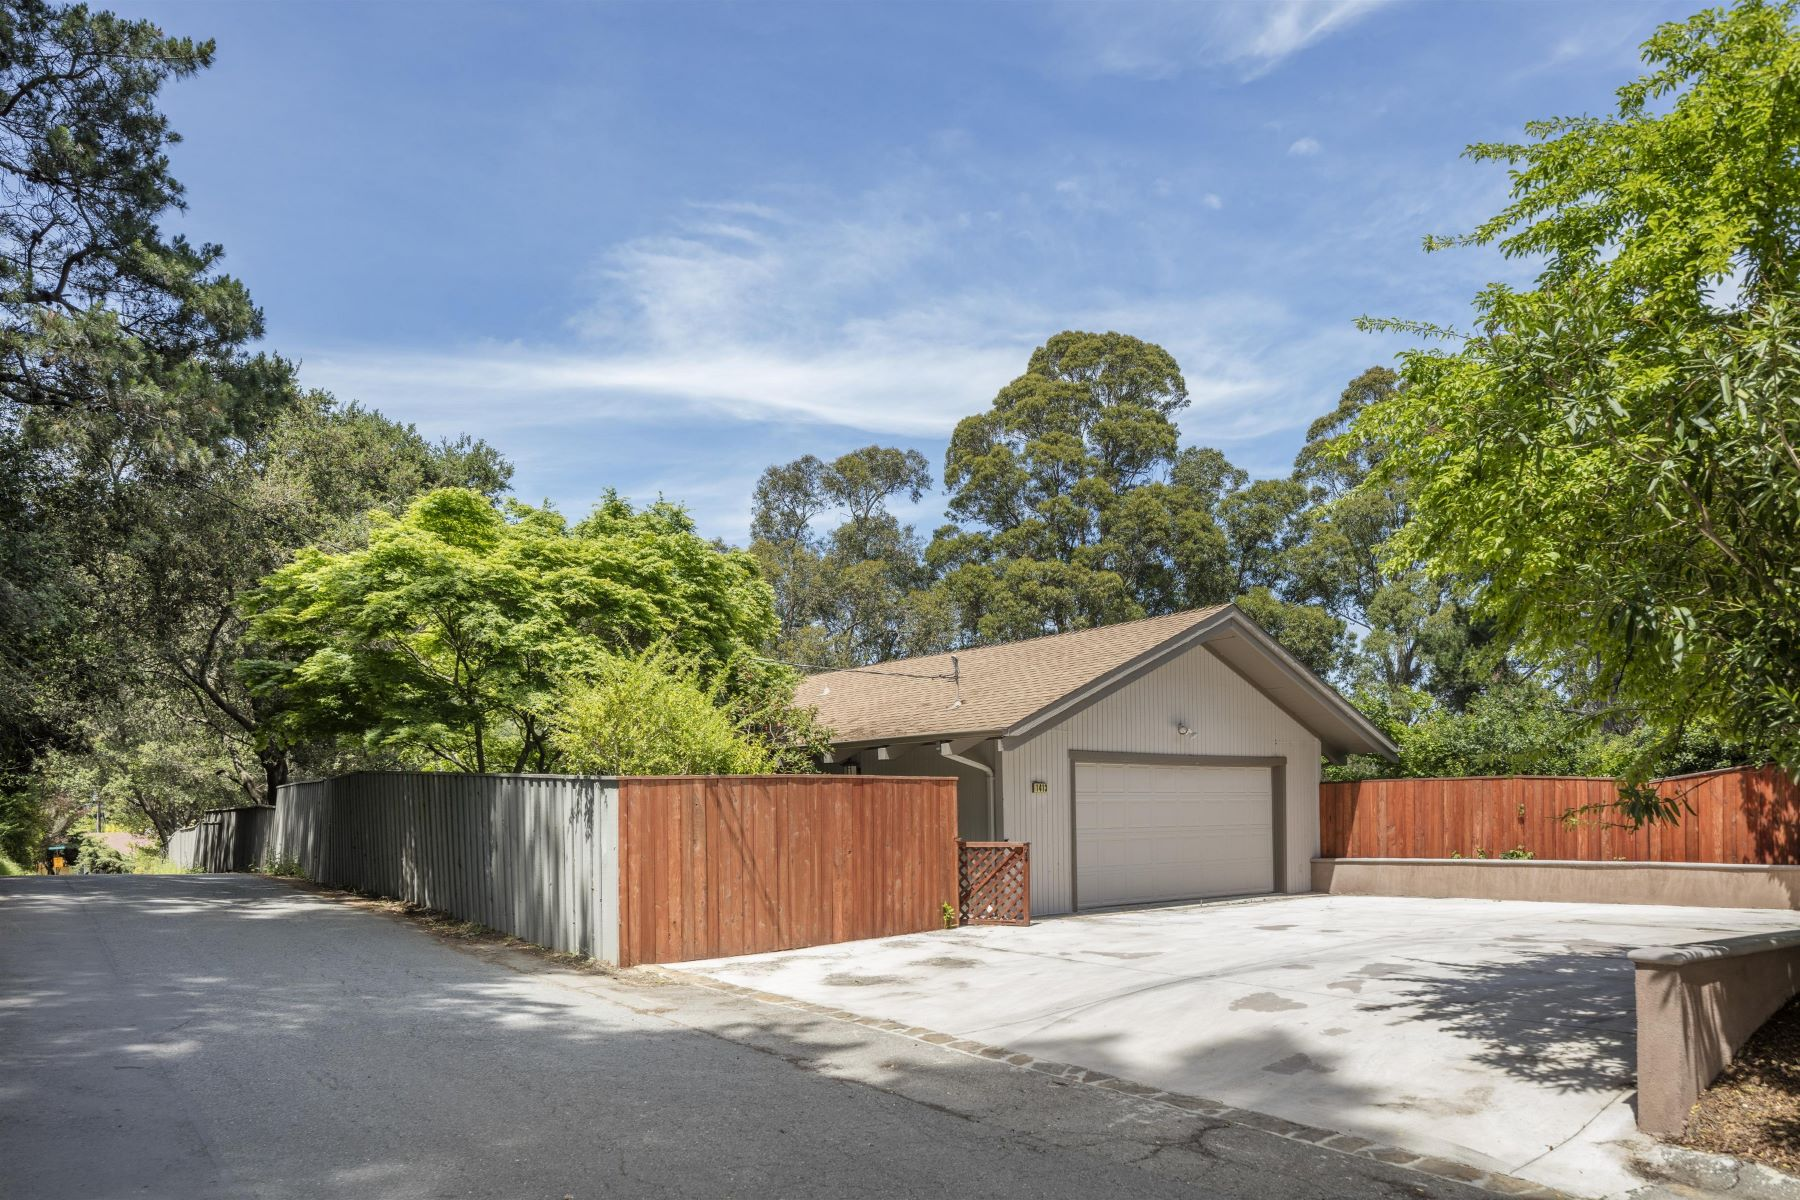 Single Family Home for Sale at Spacious and Light-Filled Home on a Half Acre Lot 1413 Casa Buena Drive Corte Madera, California 94925 United States